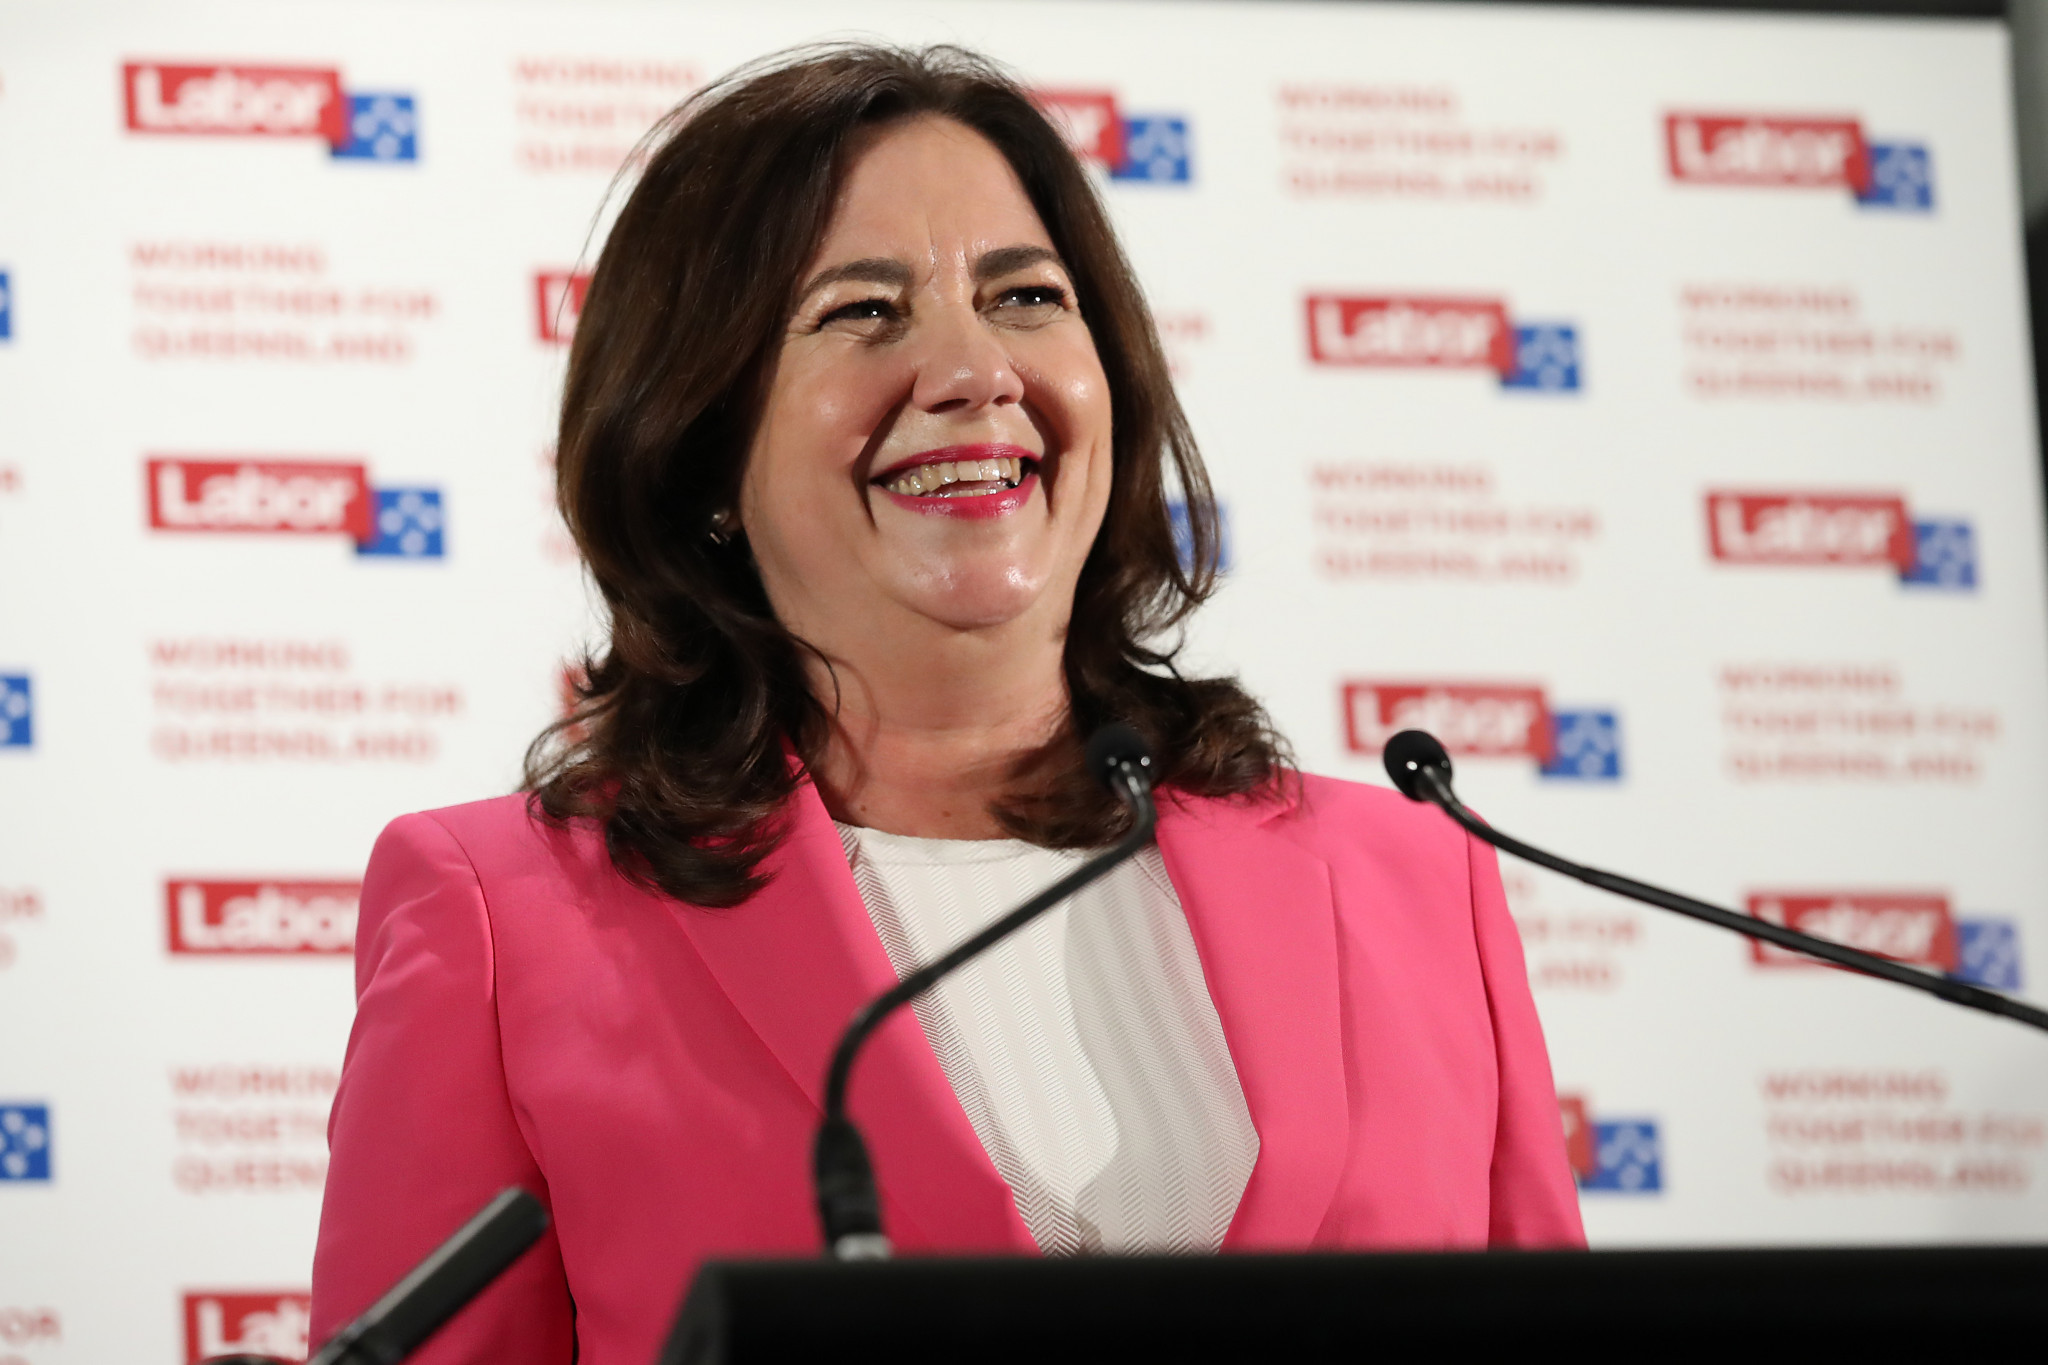 Queensland Premier Palaszczuk secures third term in boost to Olympic bid